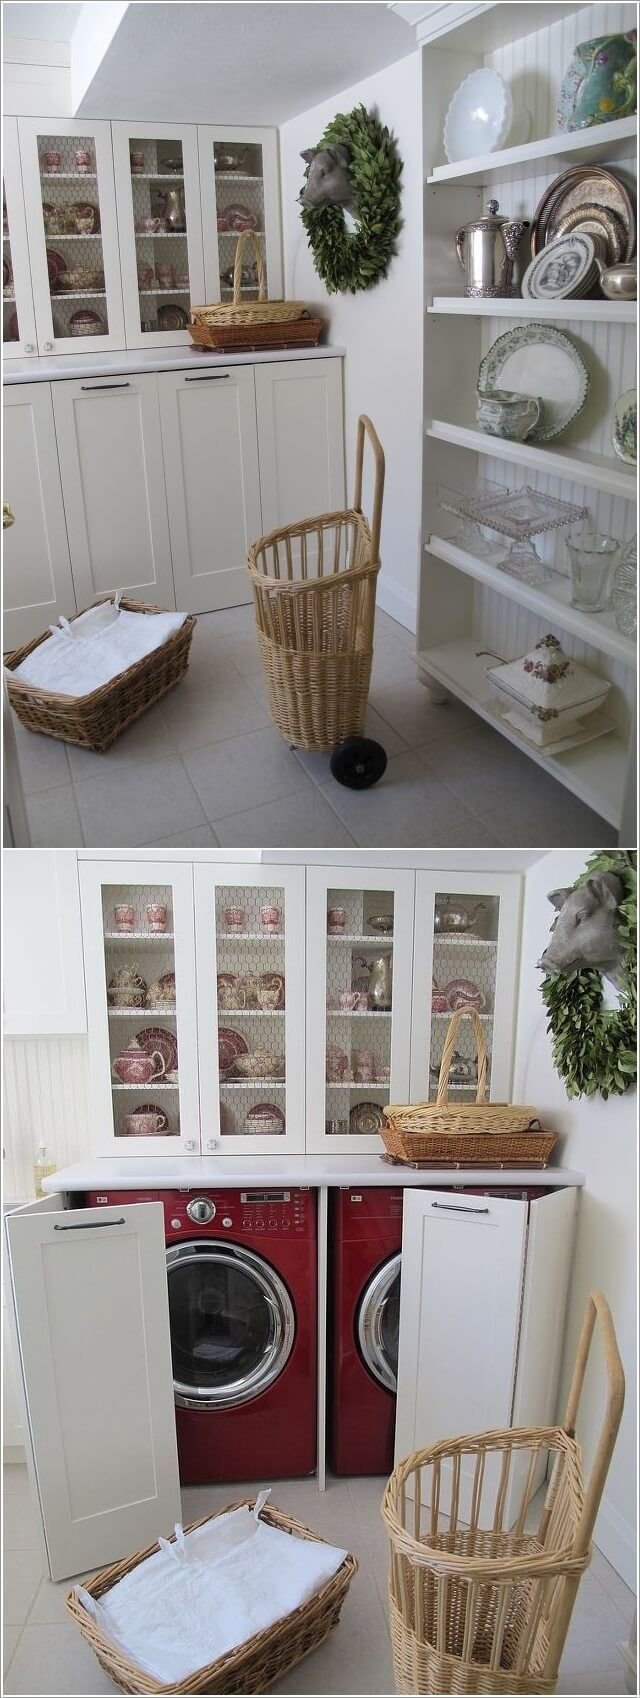 Create Your Laundry Space Inside The Kitchen by Hiding The Washer and Dryer Behind Bi-fold Doors